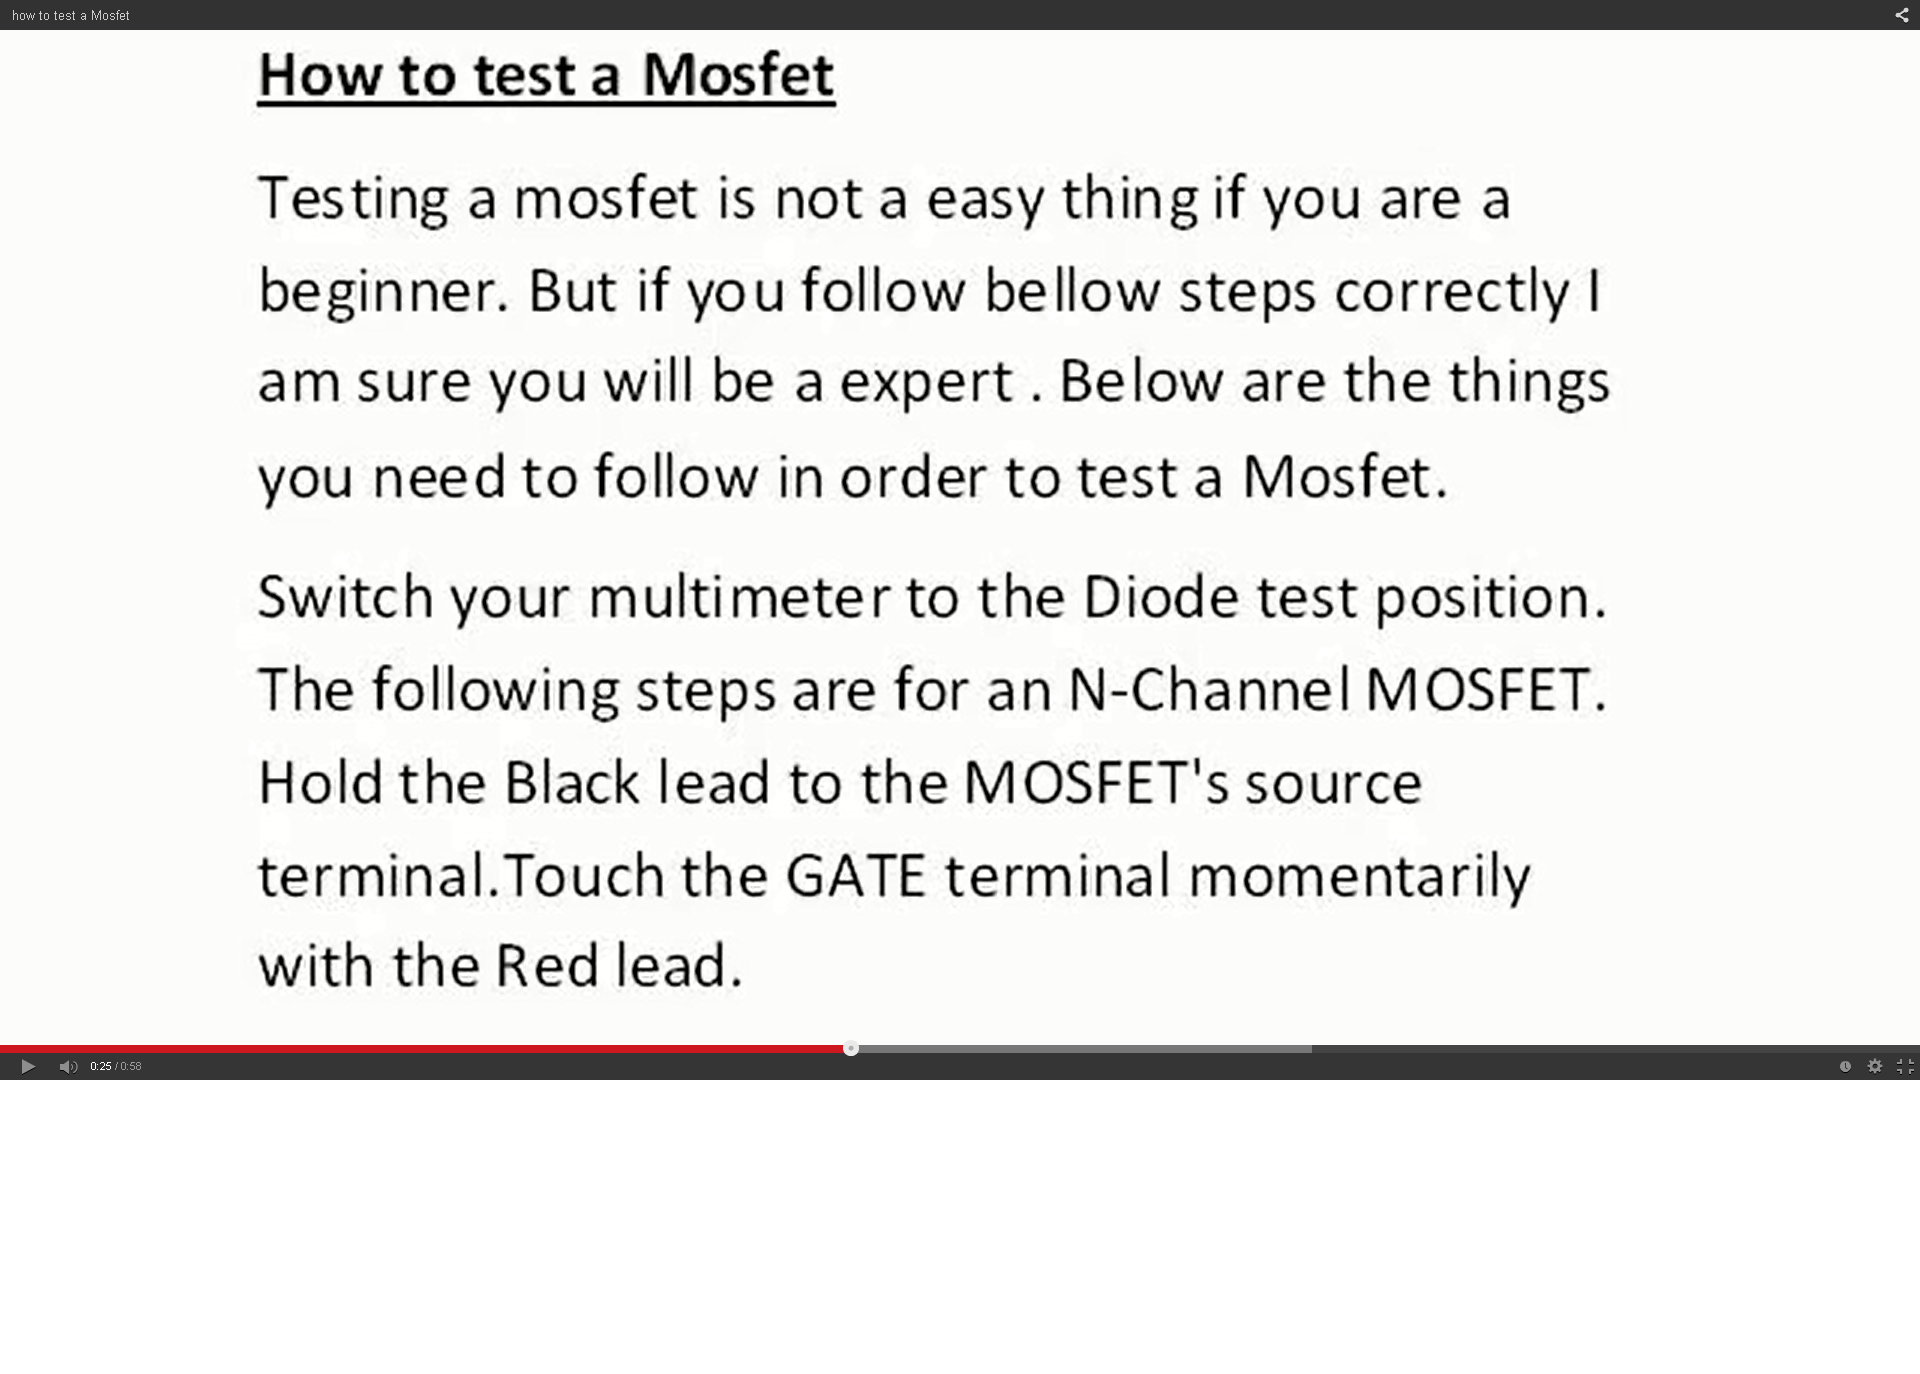 test mosfet correctly 1